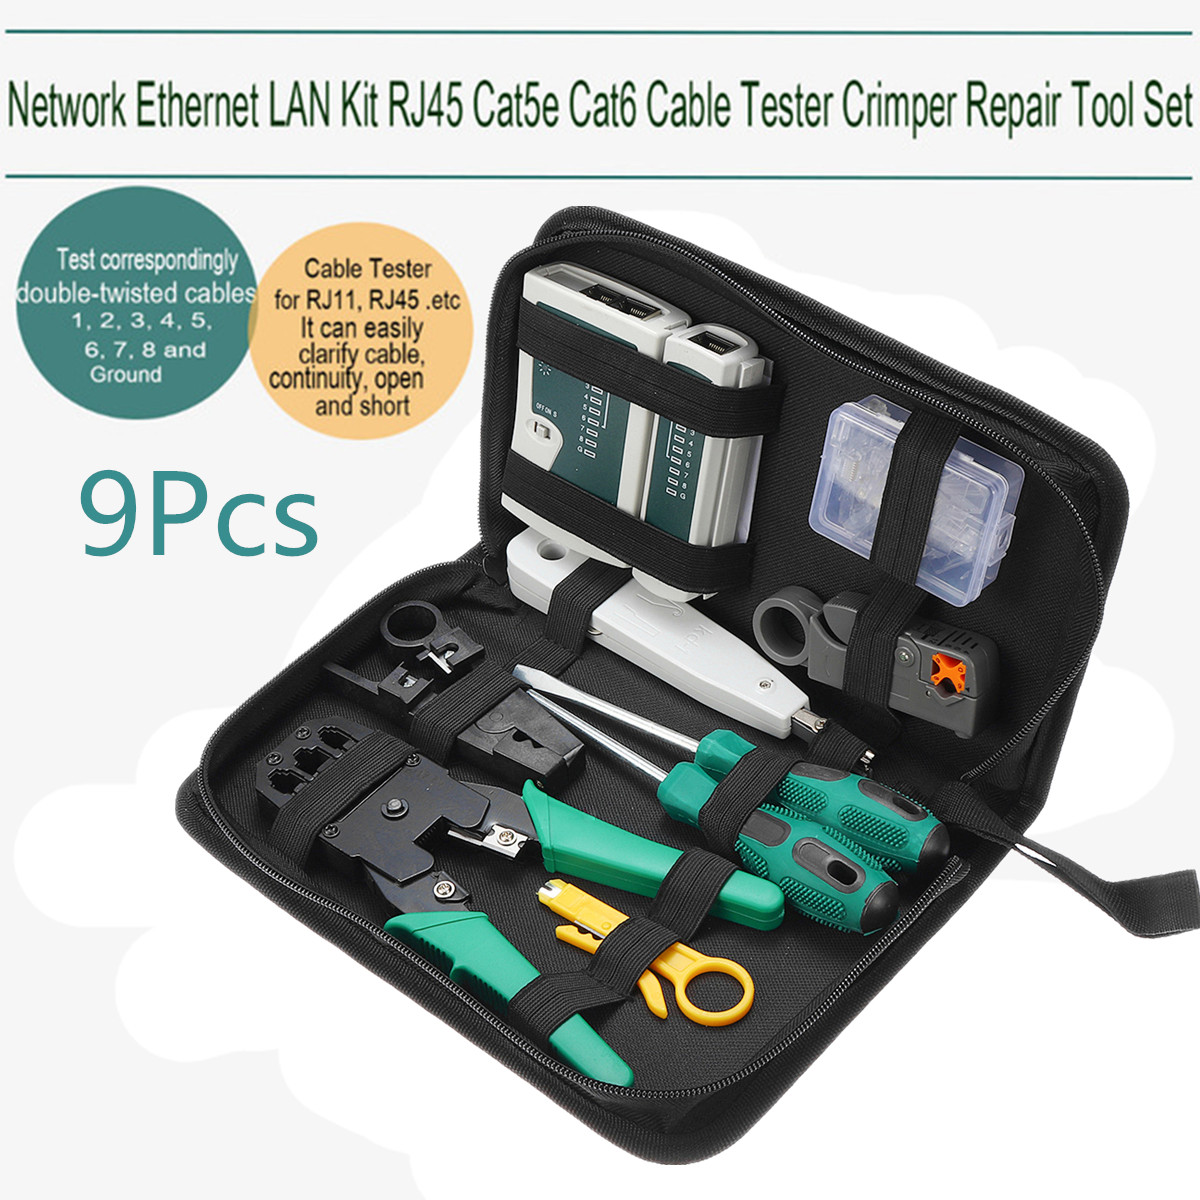 9 in1 LAN Network Repair Cable Tester Crimper Plier Hand Tool Kit Cat5 RJ45 RJ11 RJ12 Stripping Make Ethernet Connector Test rj45 rj11 rj12 cat5 network tool maintenance hand crimping kit cable tester connector crimper plug plier wire cutter screwdriver